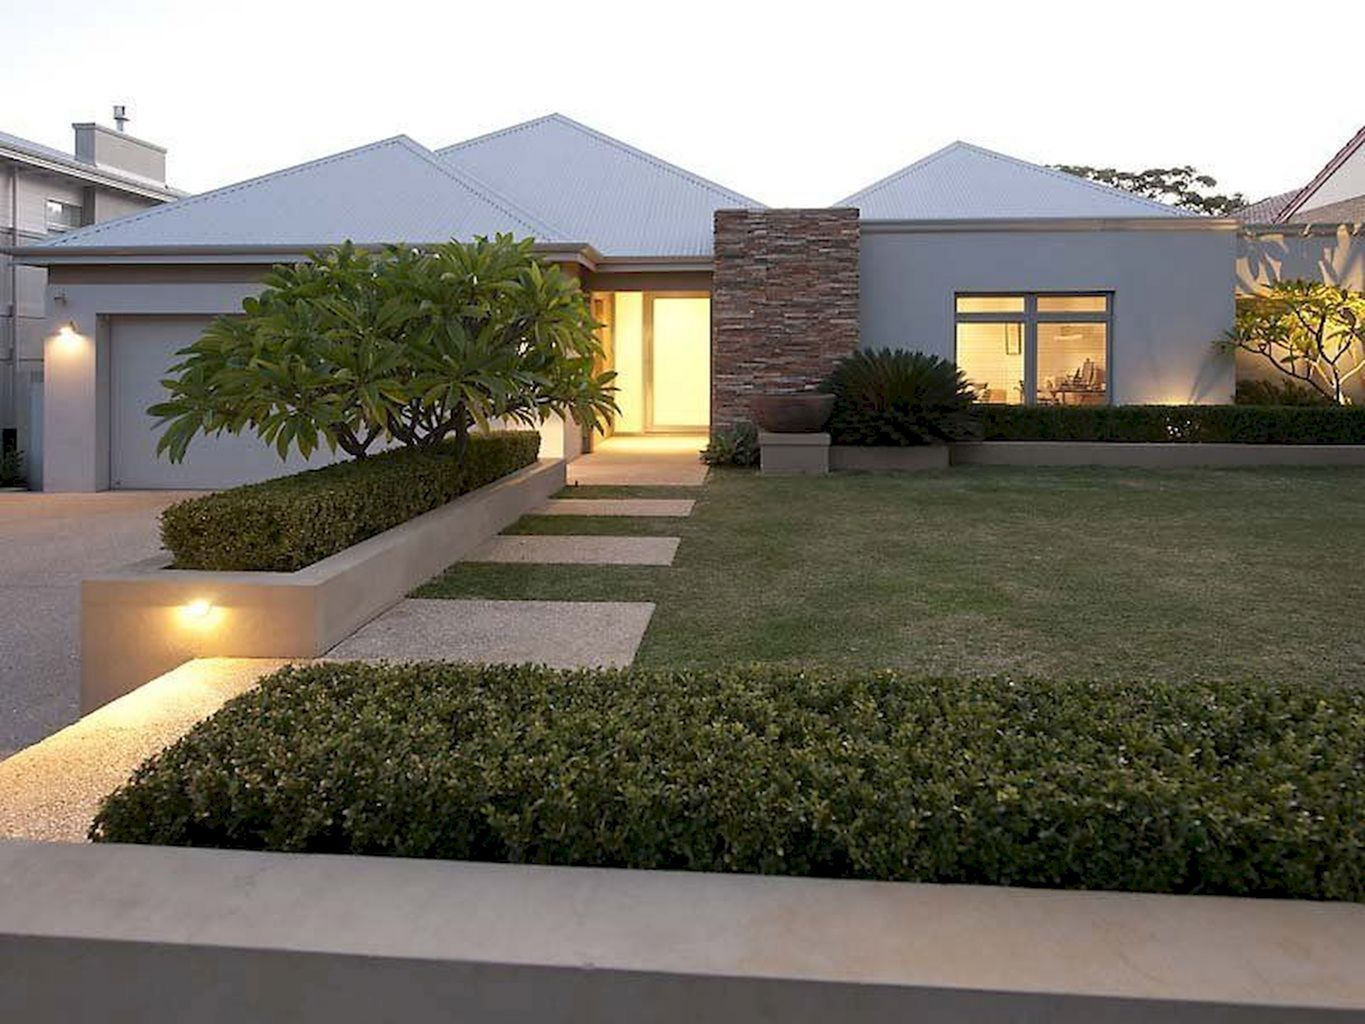 15 Spectacular Minimalist Front Garden Designs That Make Homes More Beautiful In 2020 Front Yard Garden Design Front Yard Landscaping Design Modern Front Yard